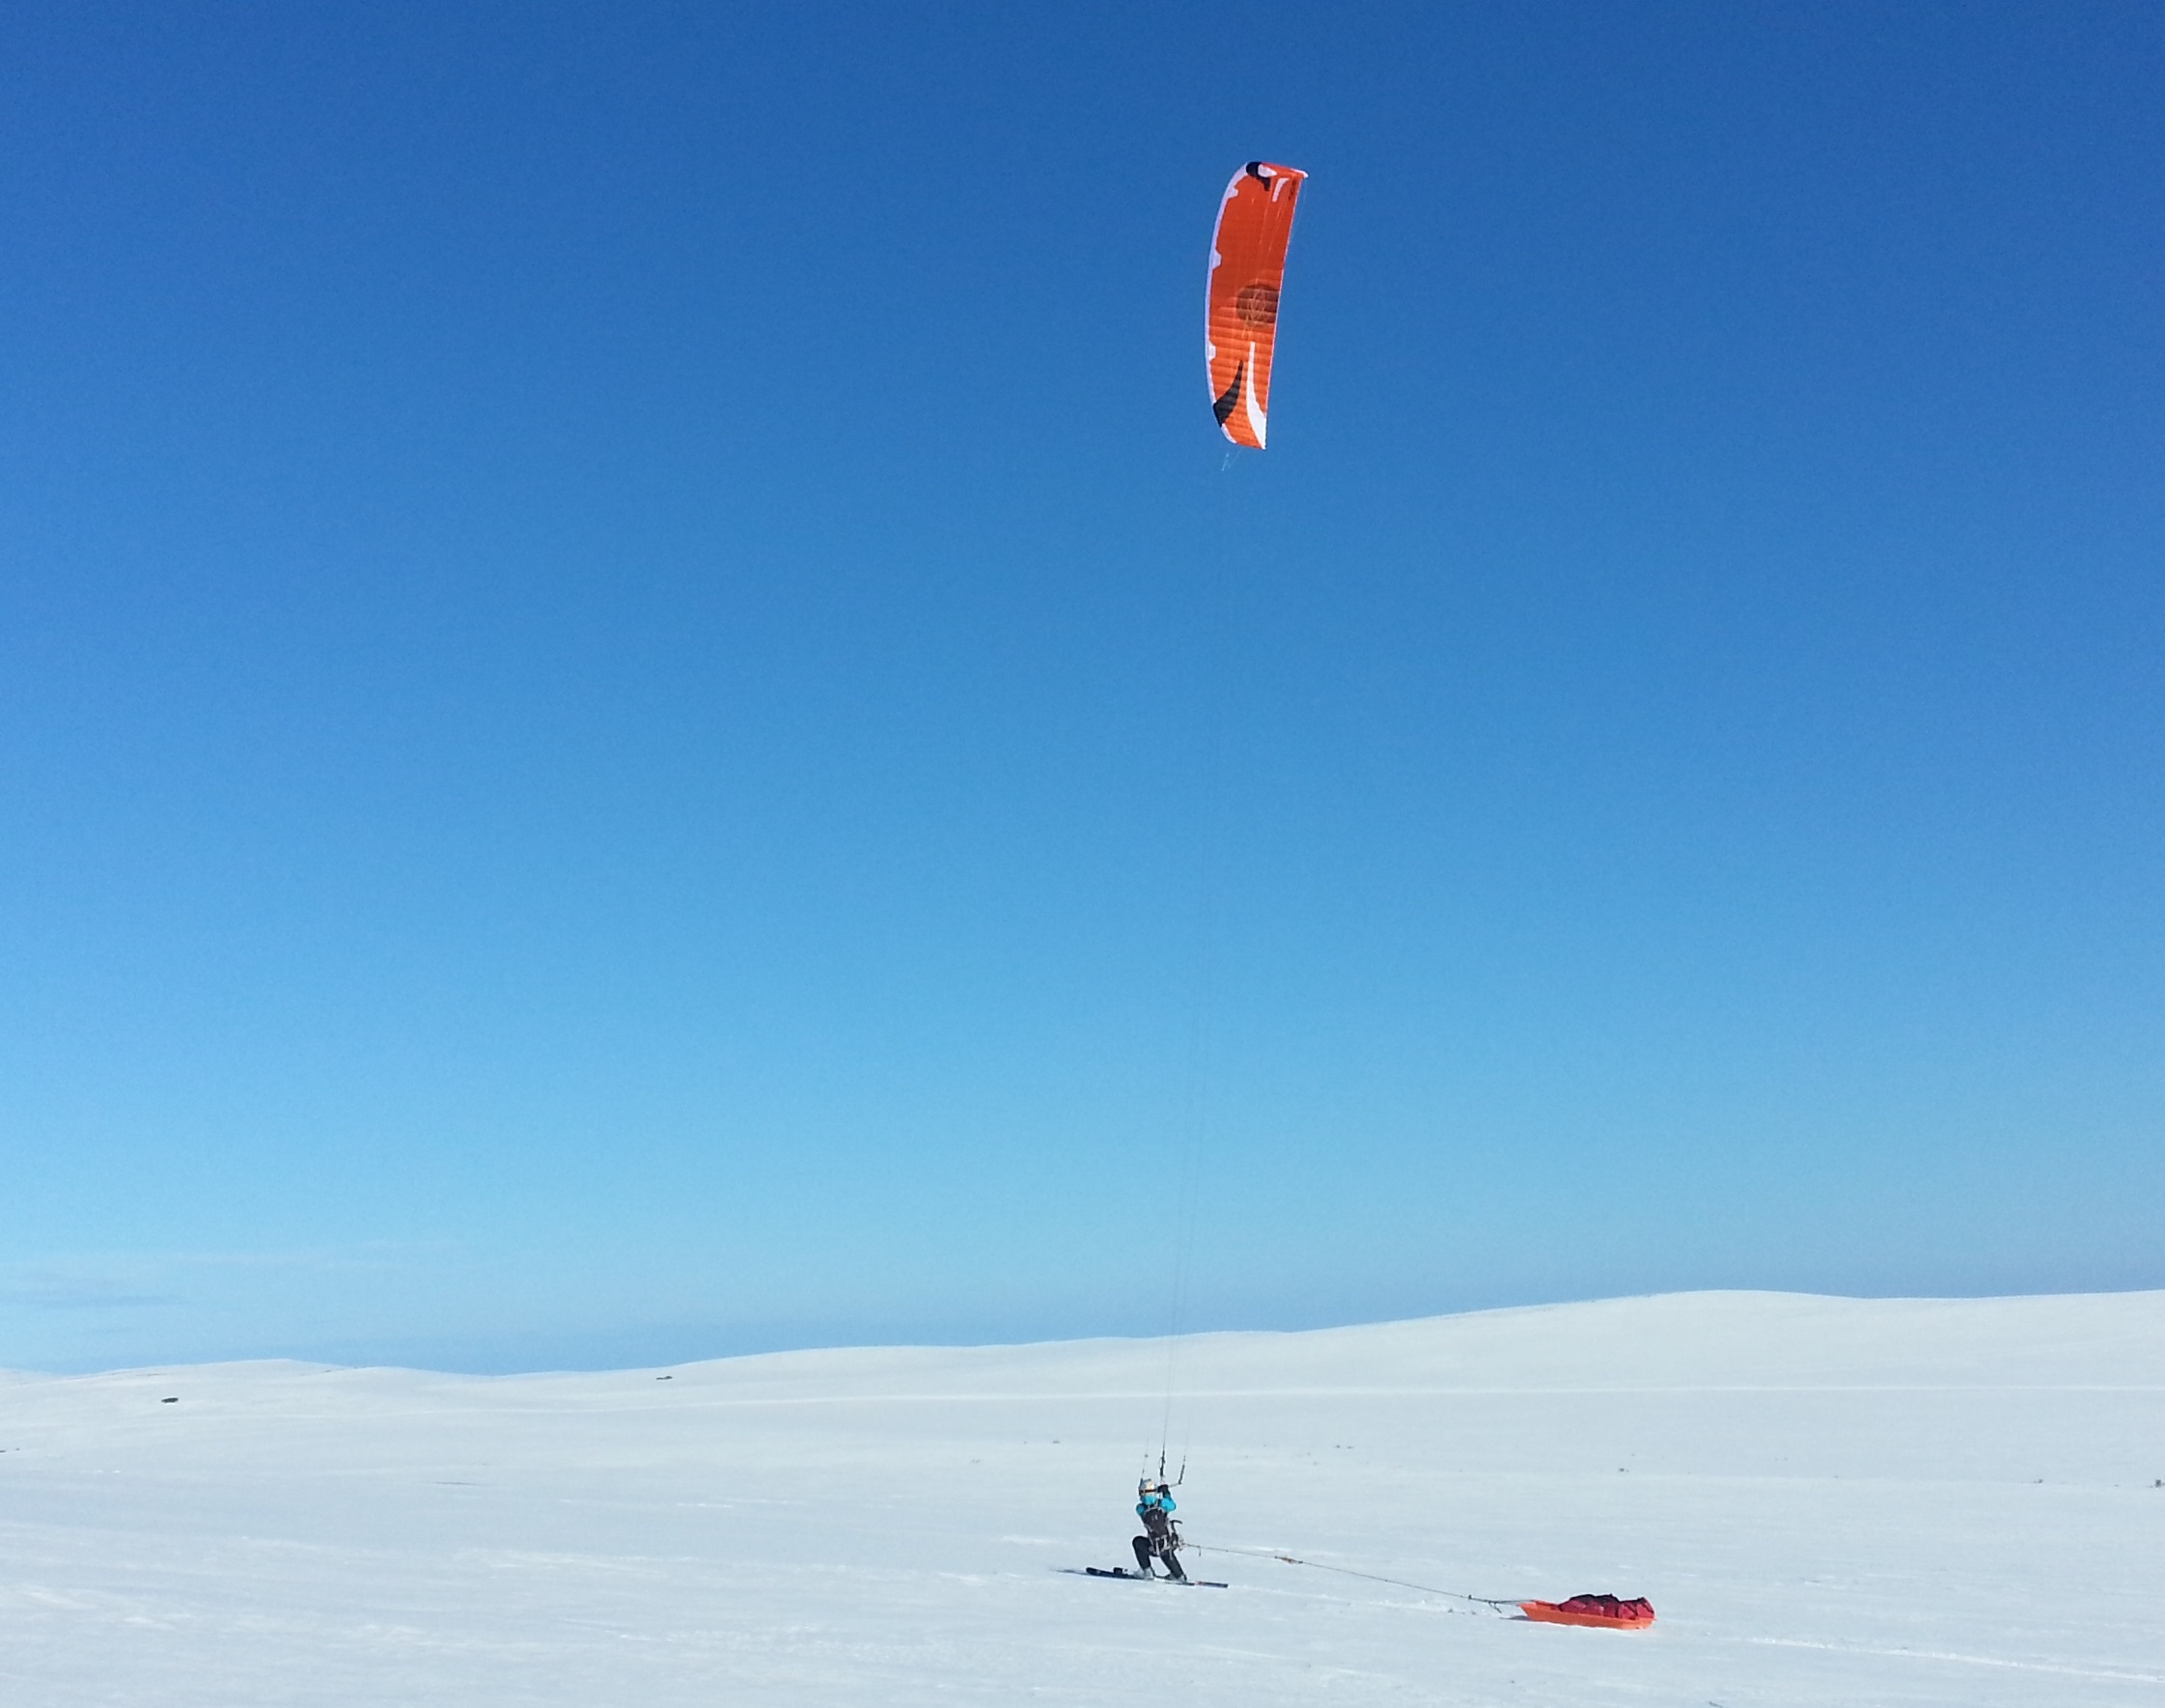 Kiting Varanger photo Oyvind Stangnes